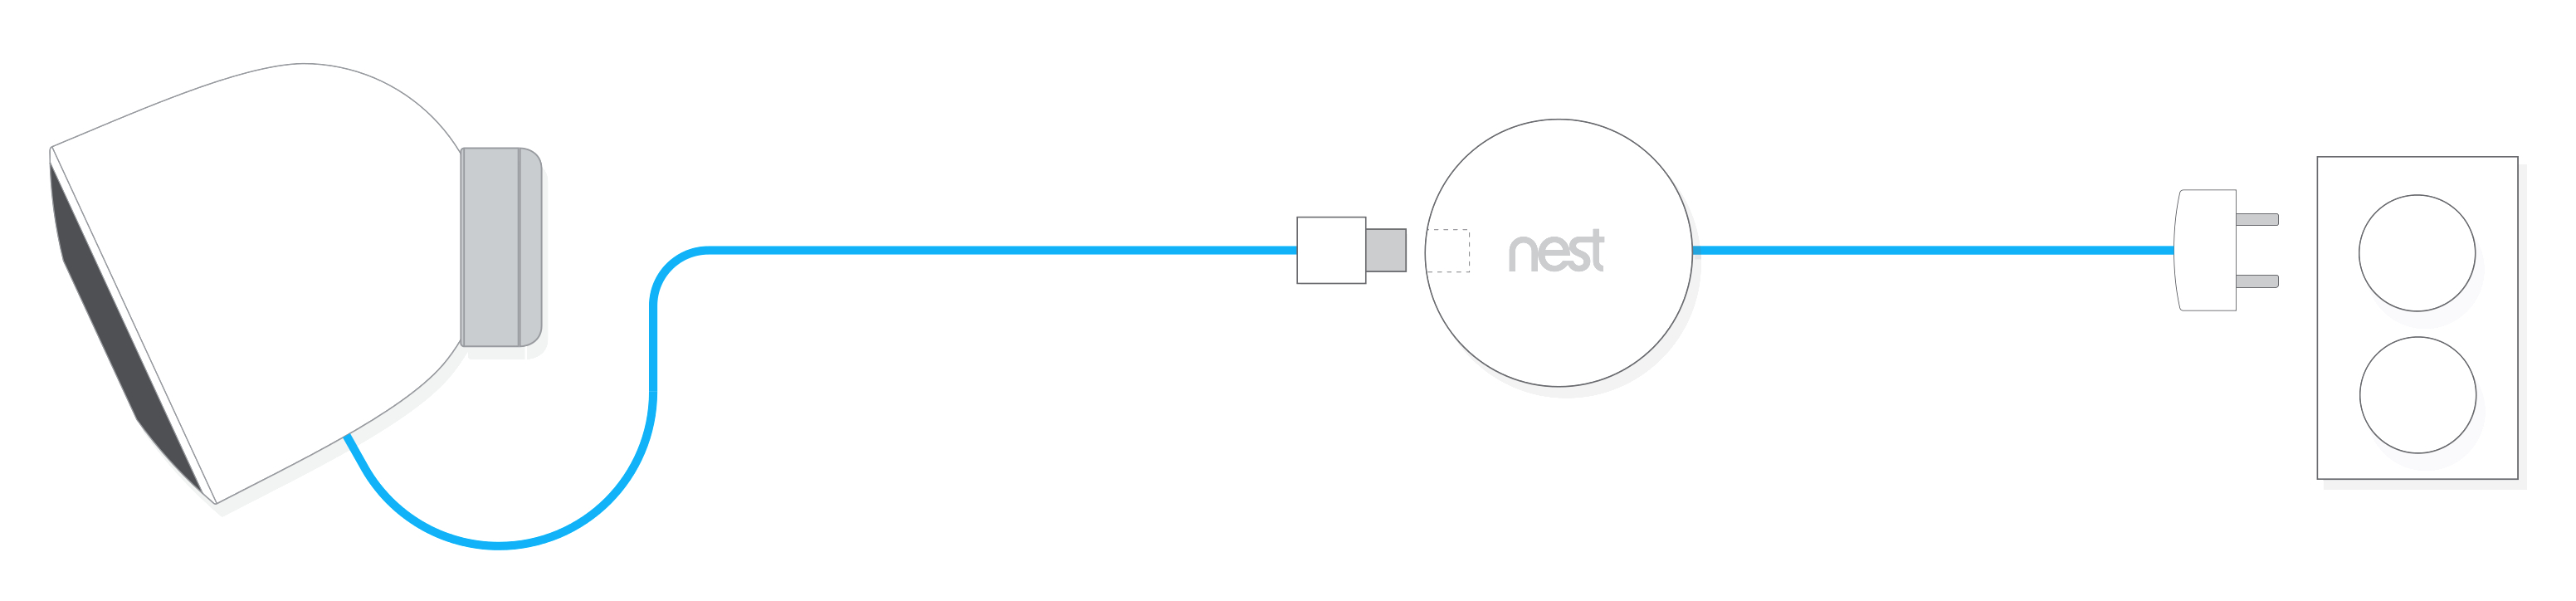 How To Install Your Outdoor Nest Cam - Nest Outdoor Camera Wiring Diagram